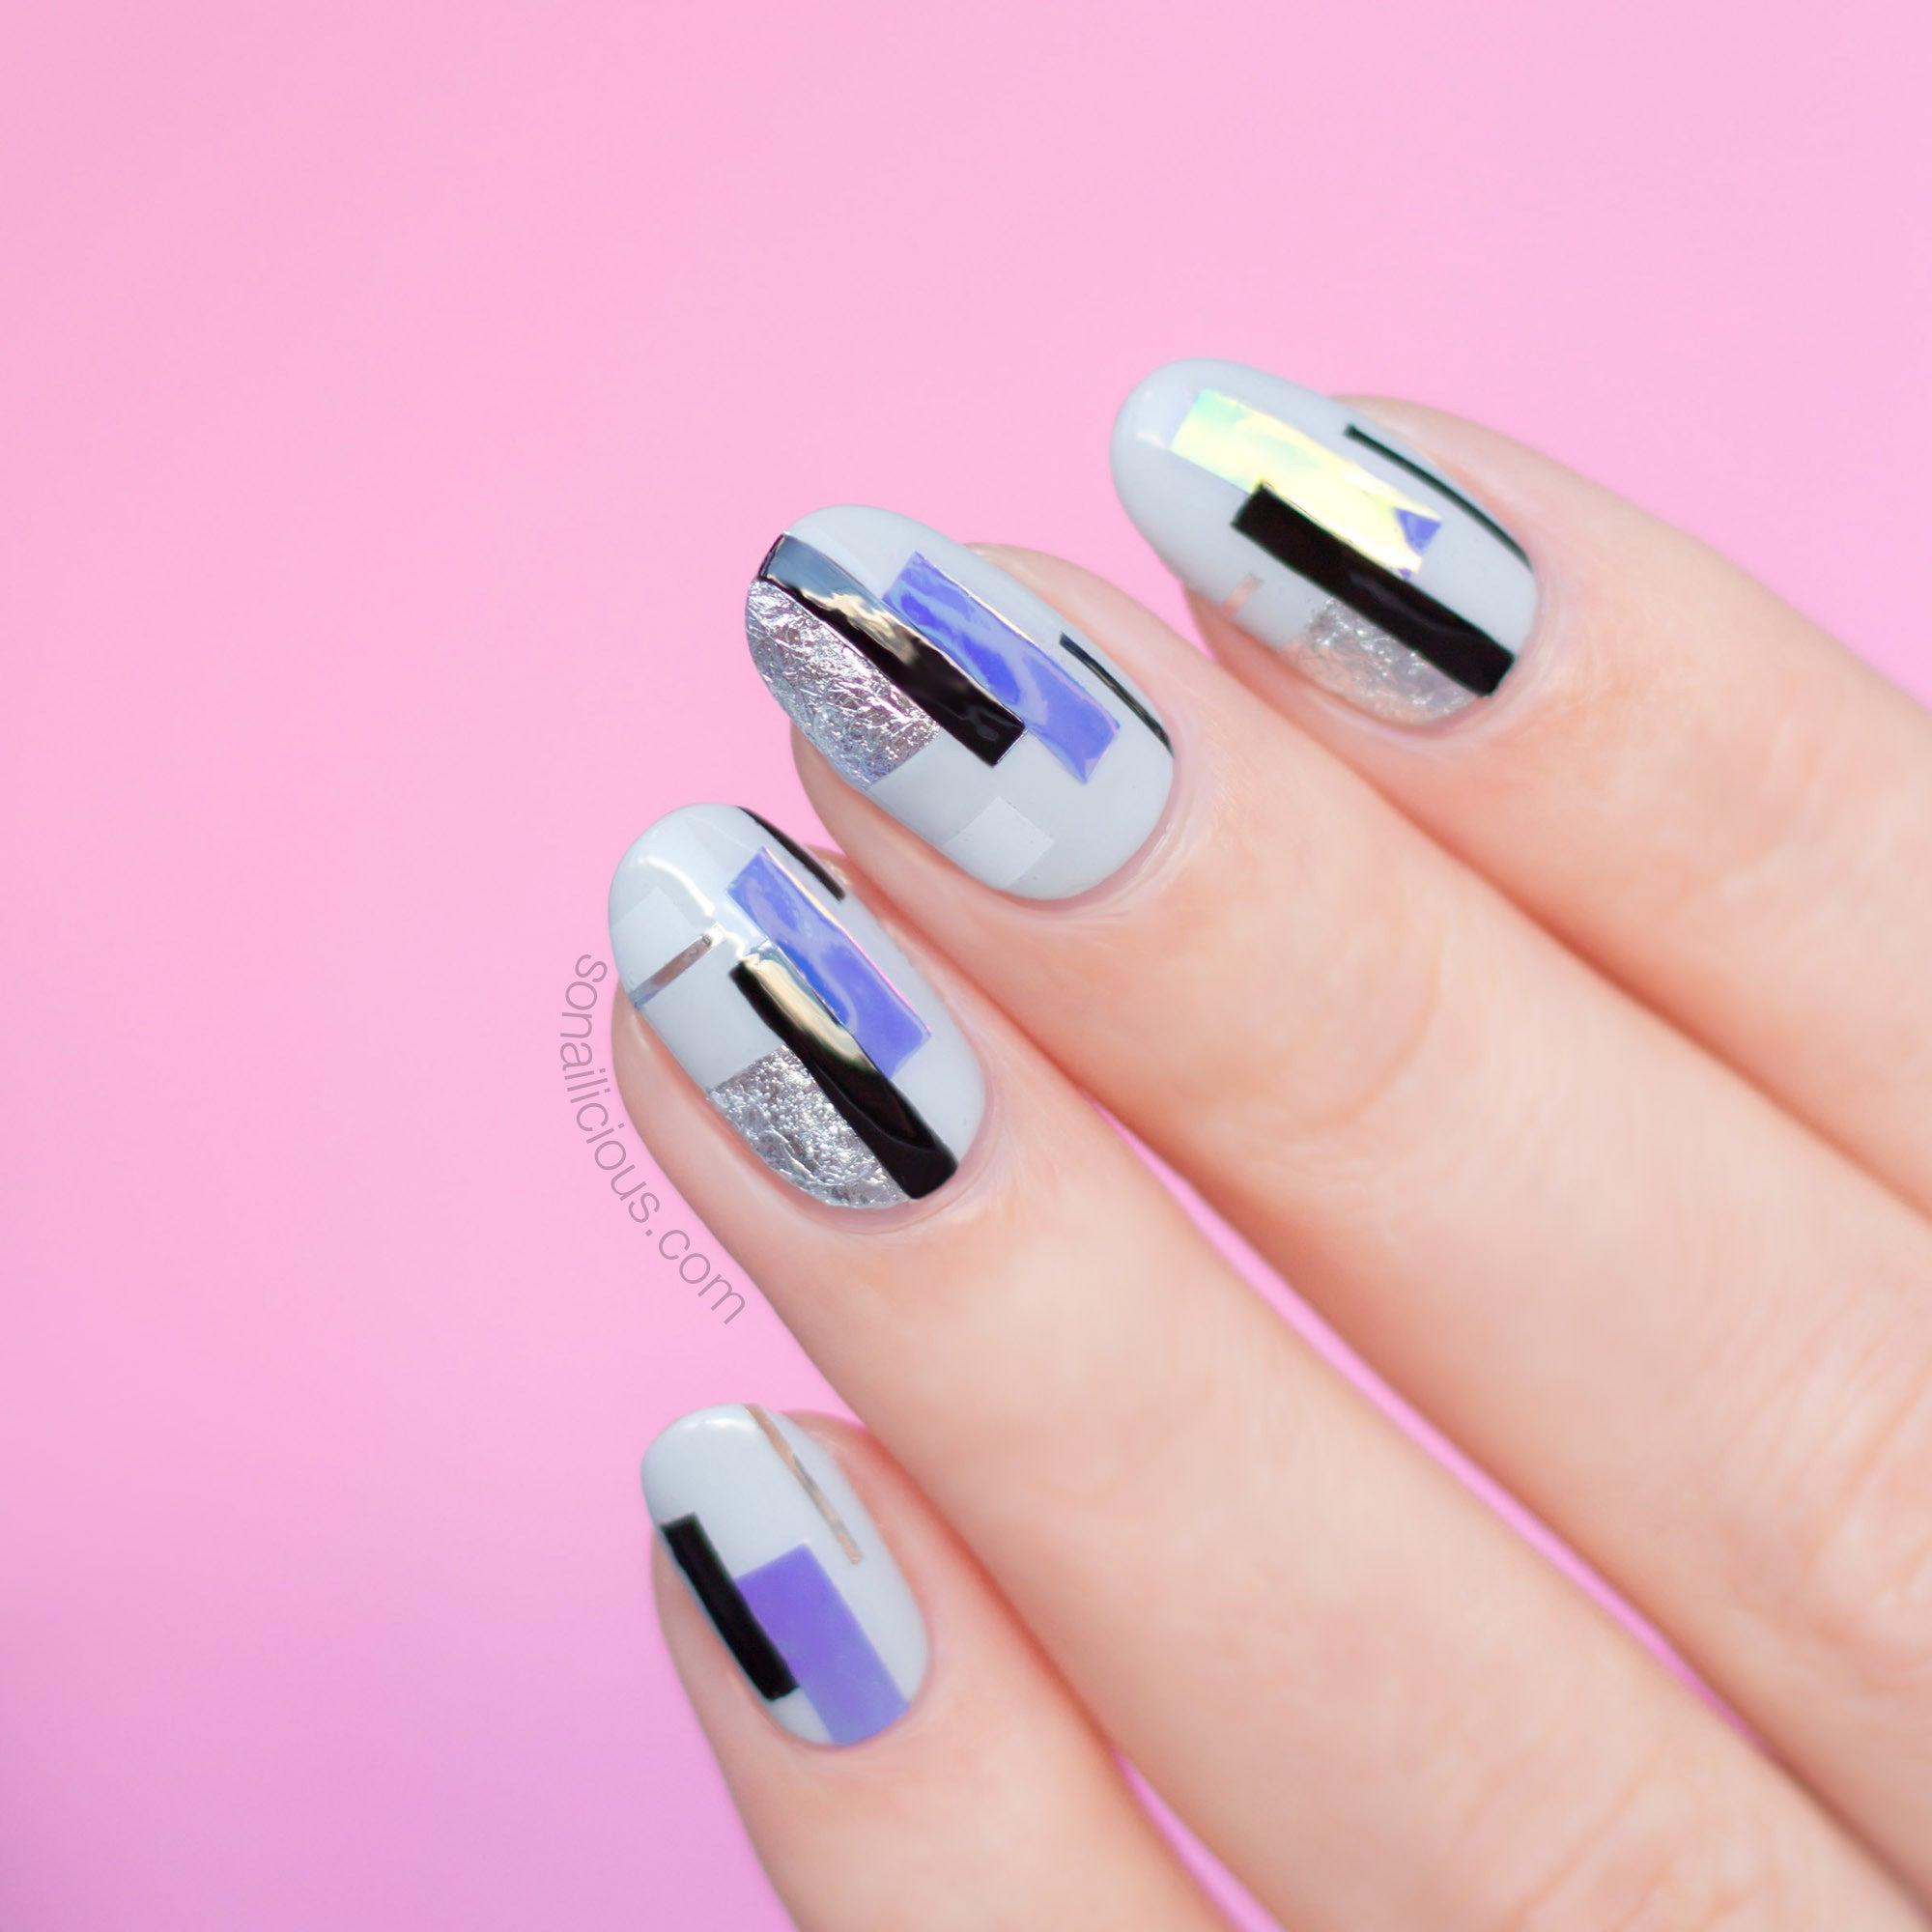 Shattered glass nail foil sonailicious boutique shattered glass nail foil prinsesfo Choice Image